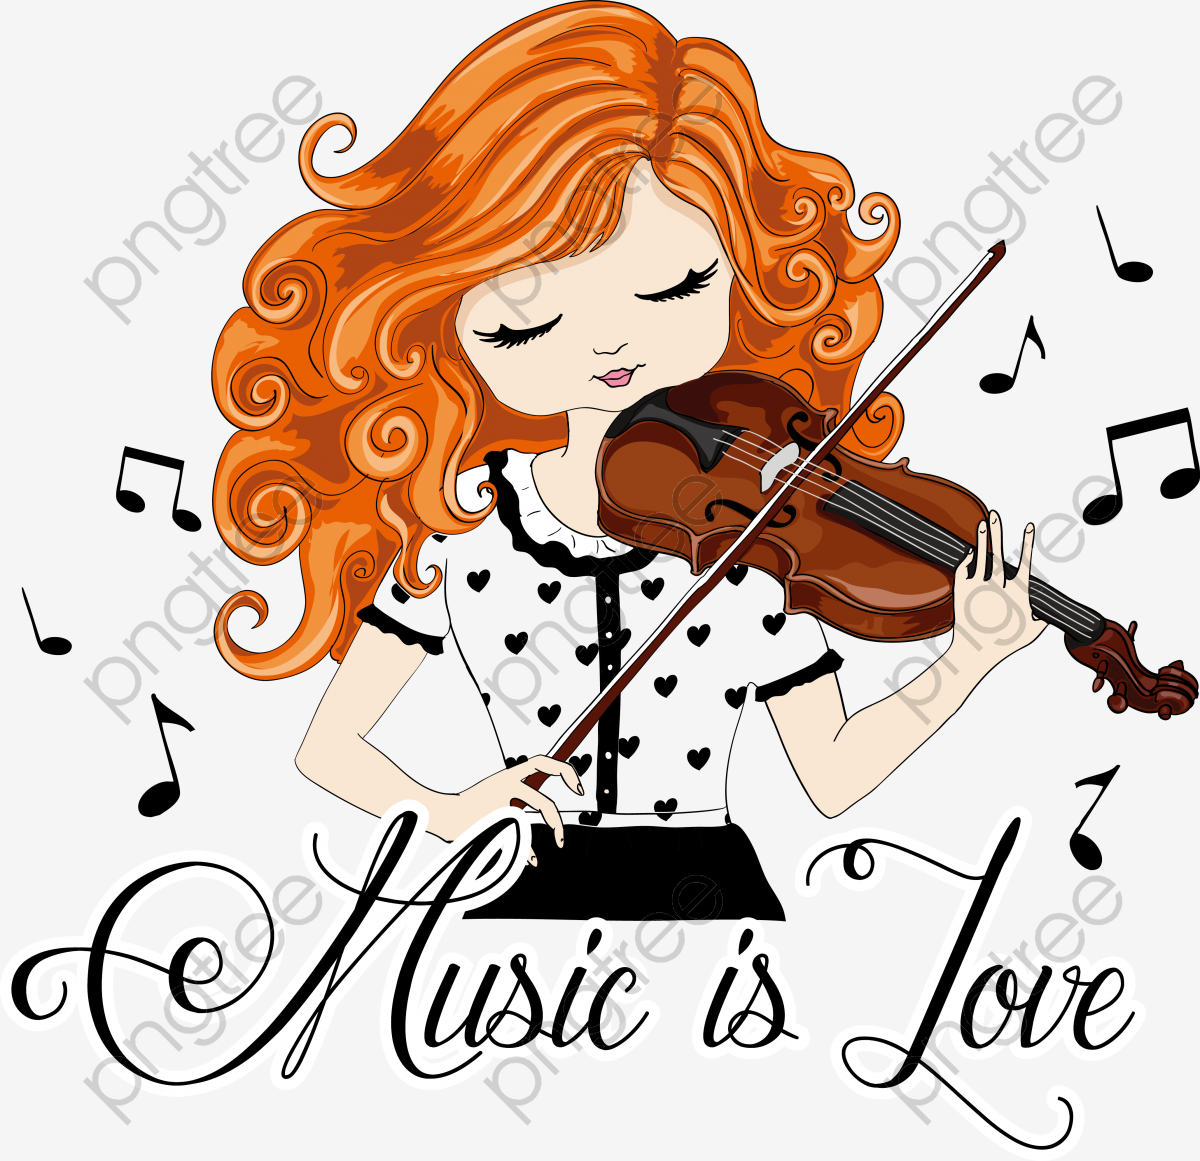 Cool Girl Violin Png - Transparent little girl playing the violin PNG Format Image With ...